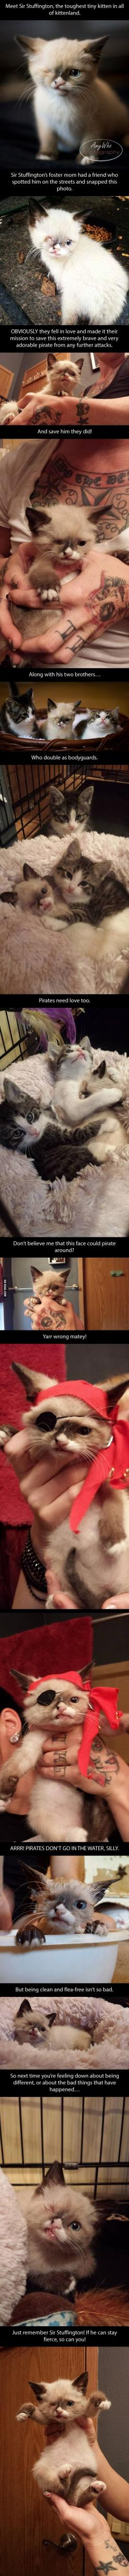 Awe: Cutest Pirate, Sweet, My Heart, Pirate Kitten, Animal